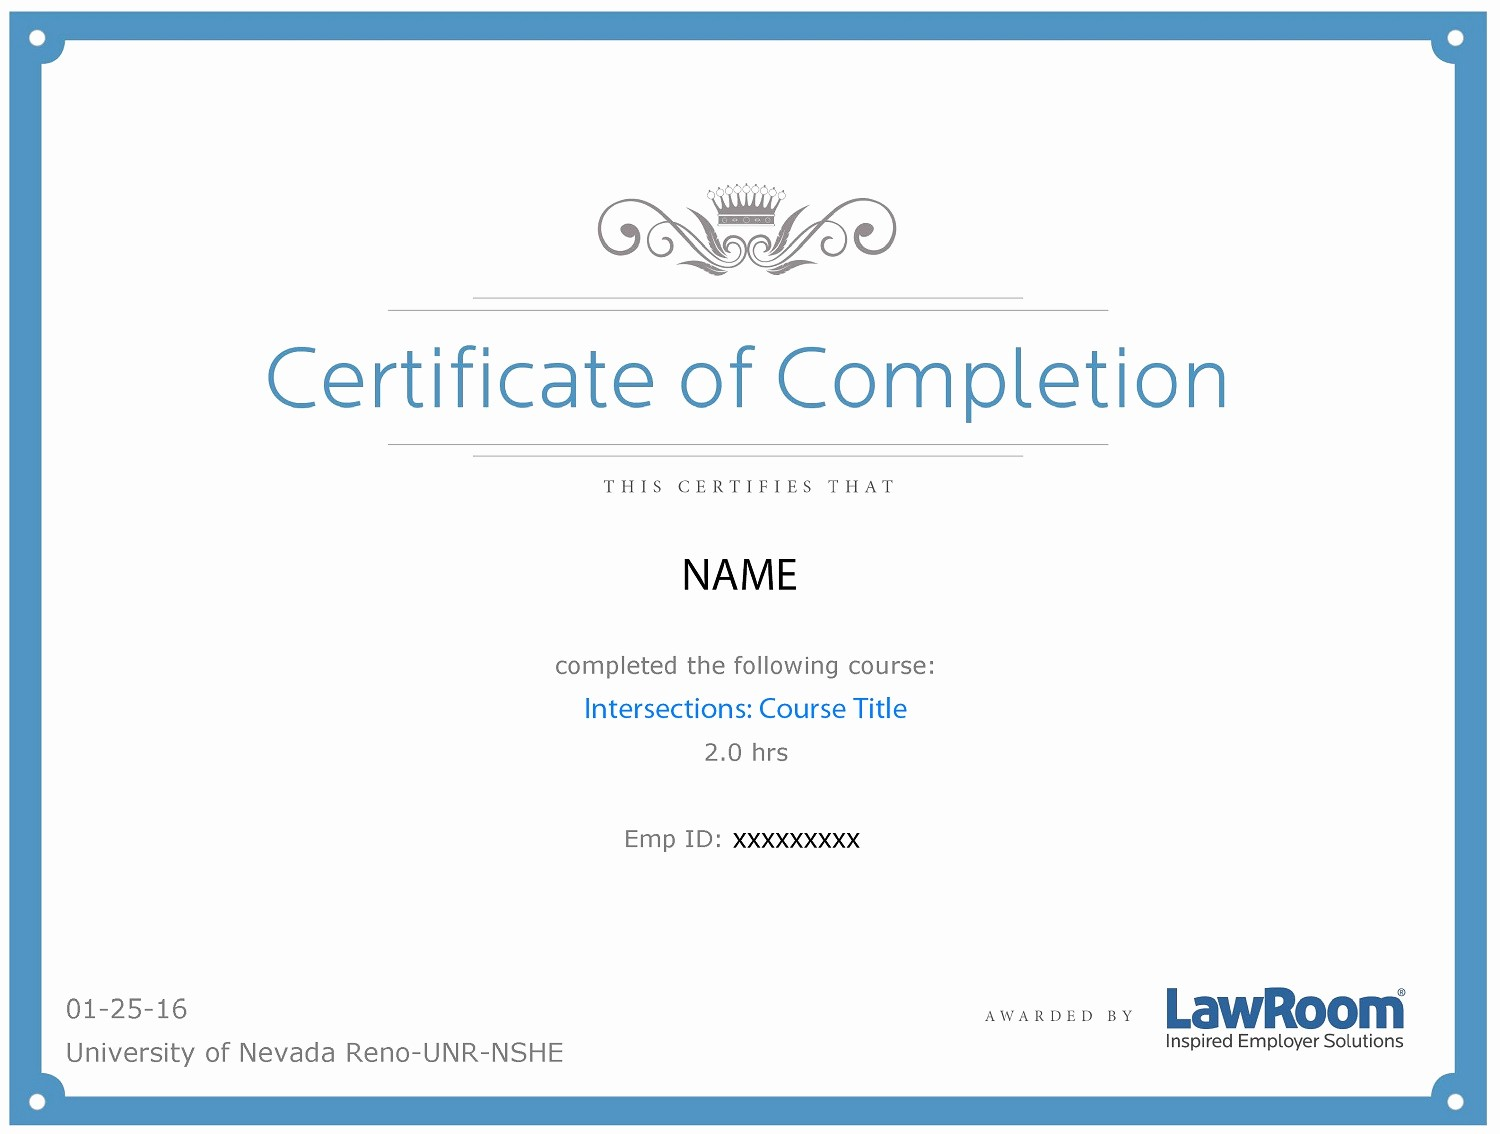 Certificate Of Completion Of Training Inspirational Lawroom Line Training